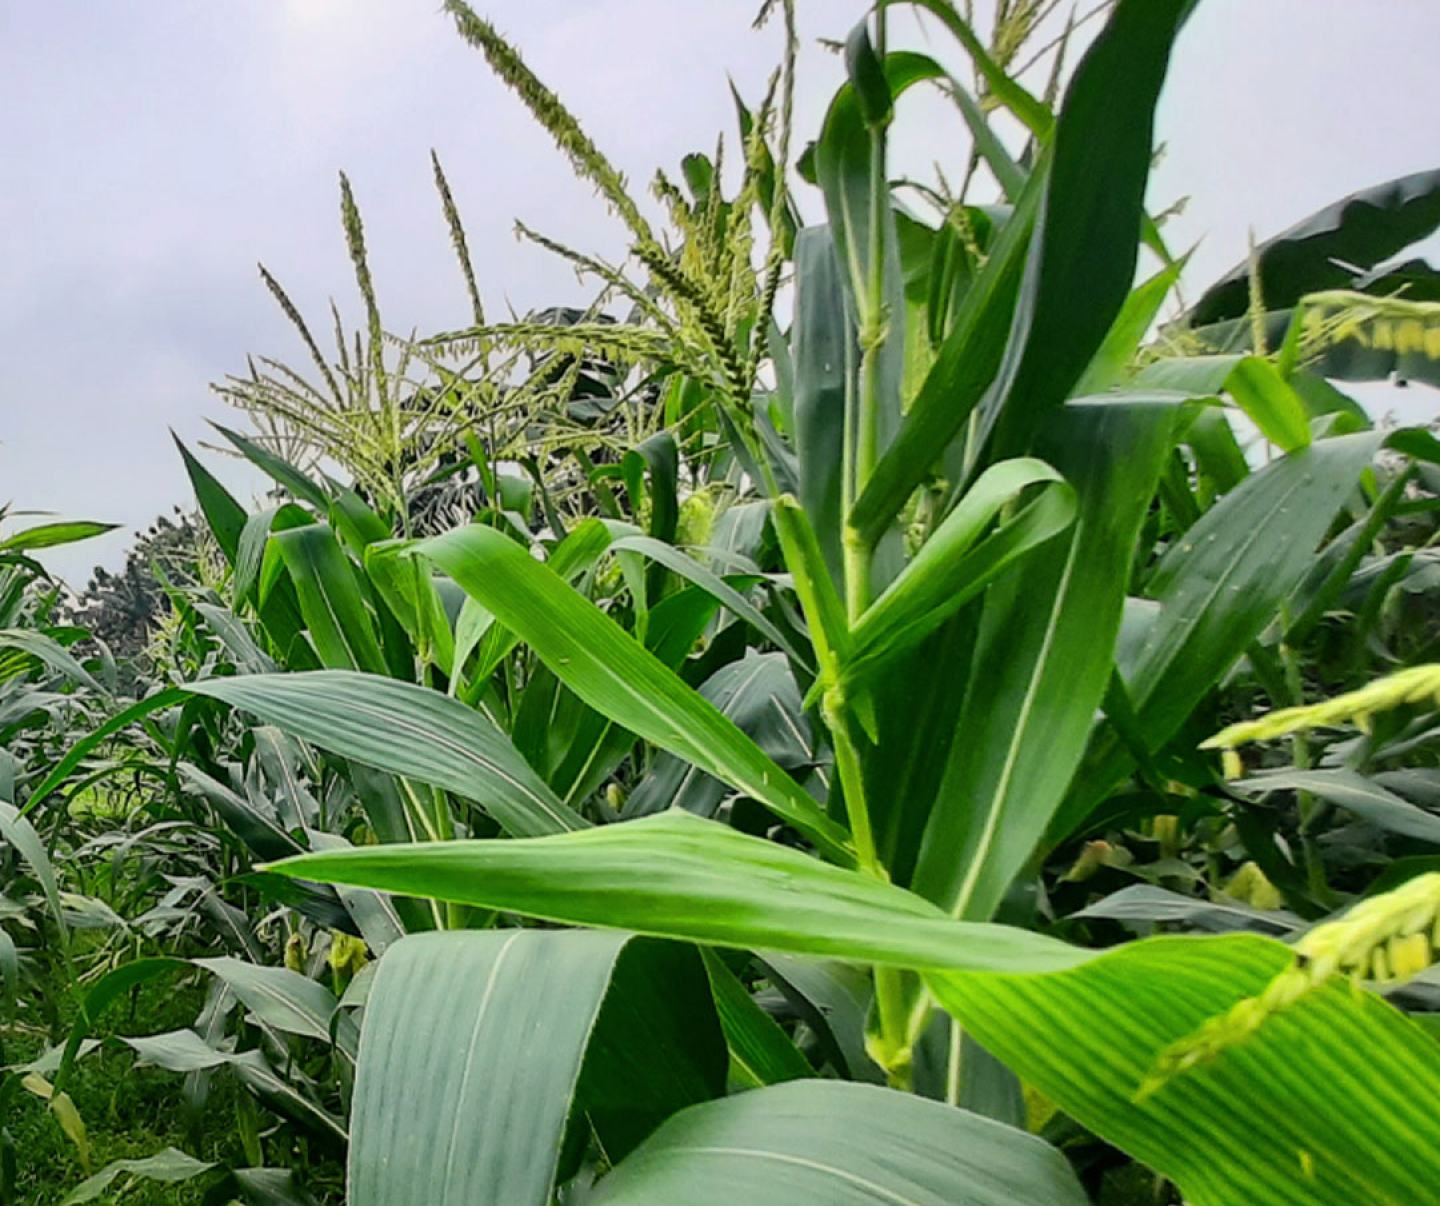 Close up of corn crop in field